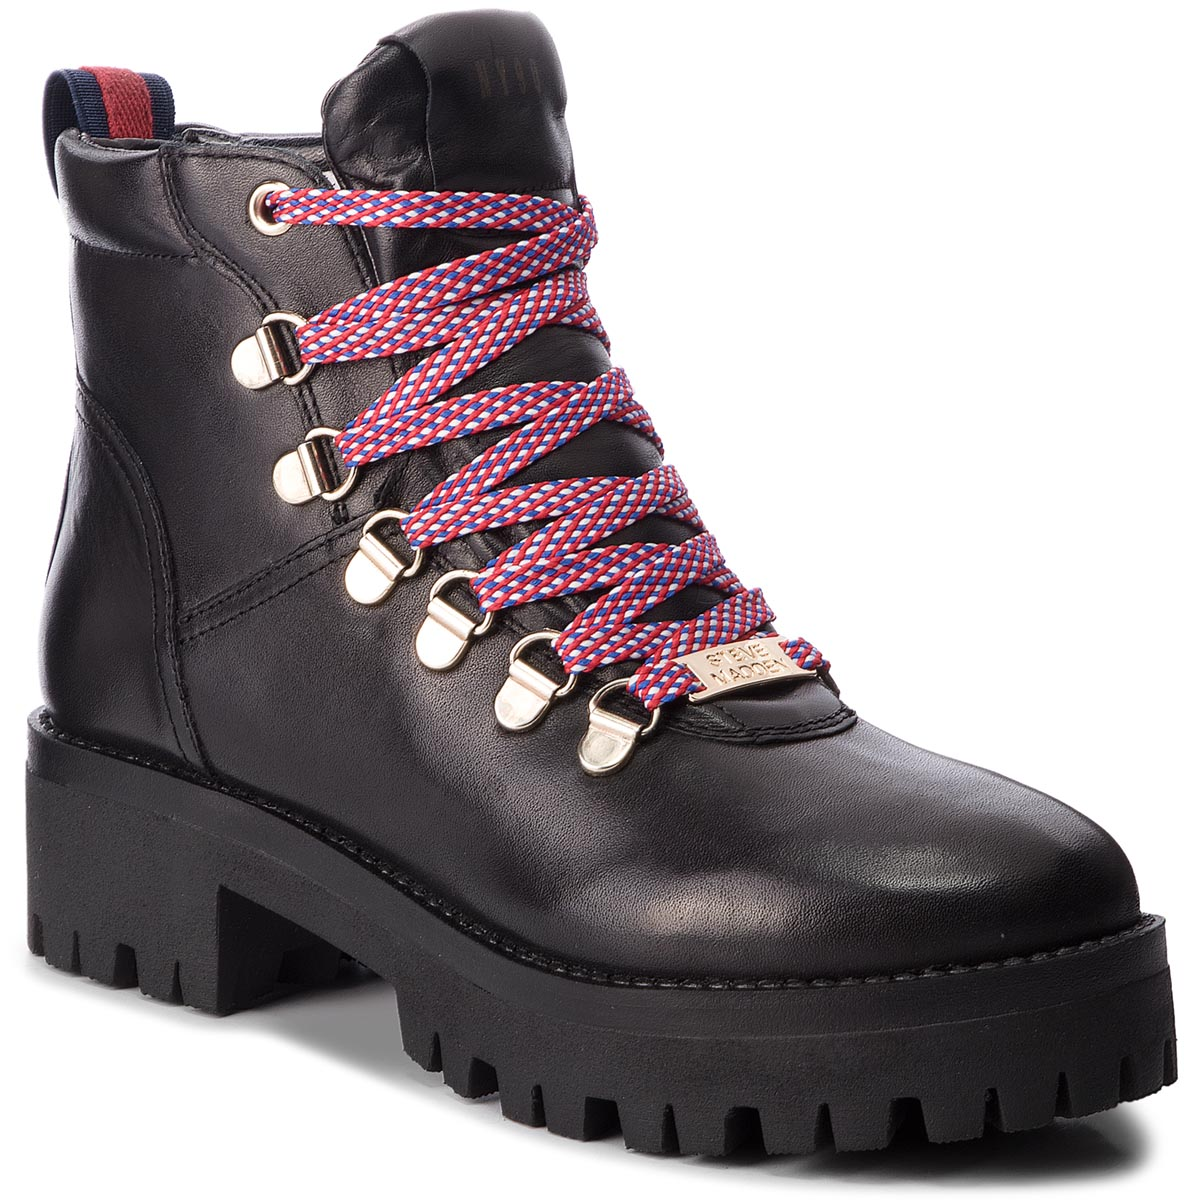 Trapery STEVE MADDEN - Boomer Ankle Boot SM11000245-03001-017 Black Leather